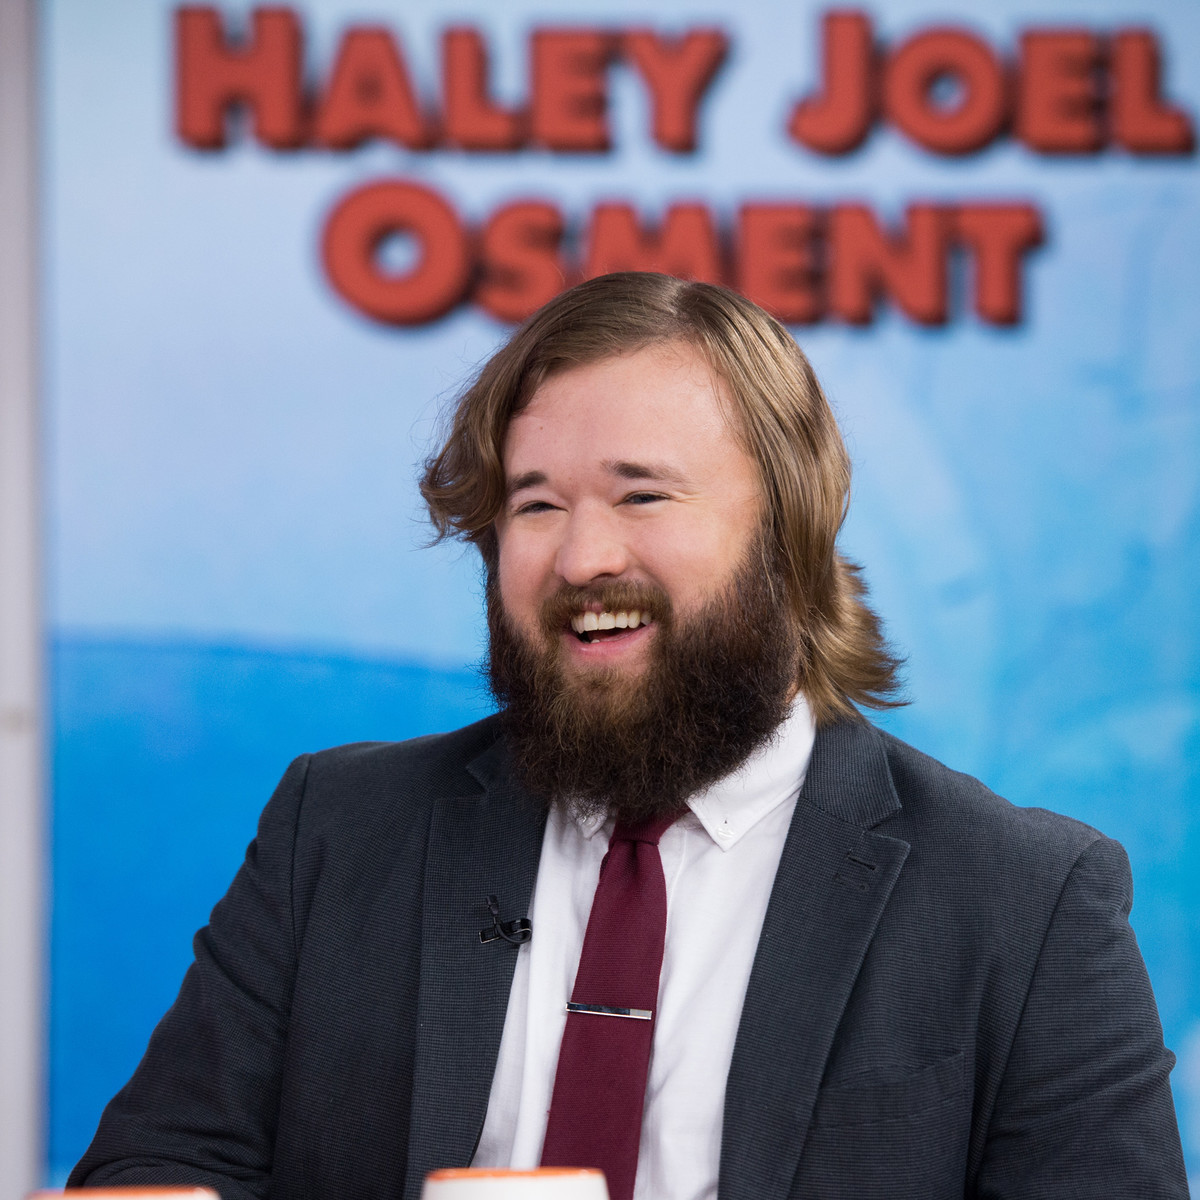 unrecognizable famous people haley joel osment after